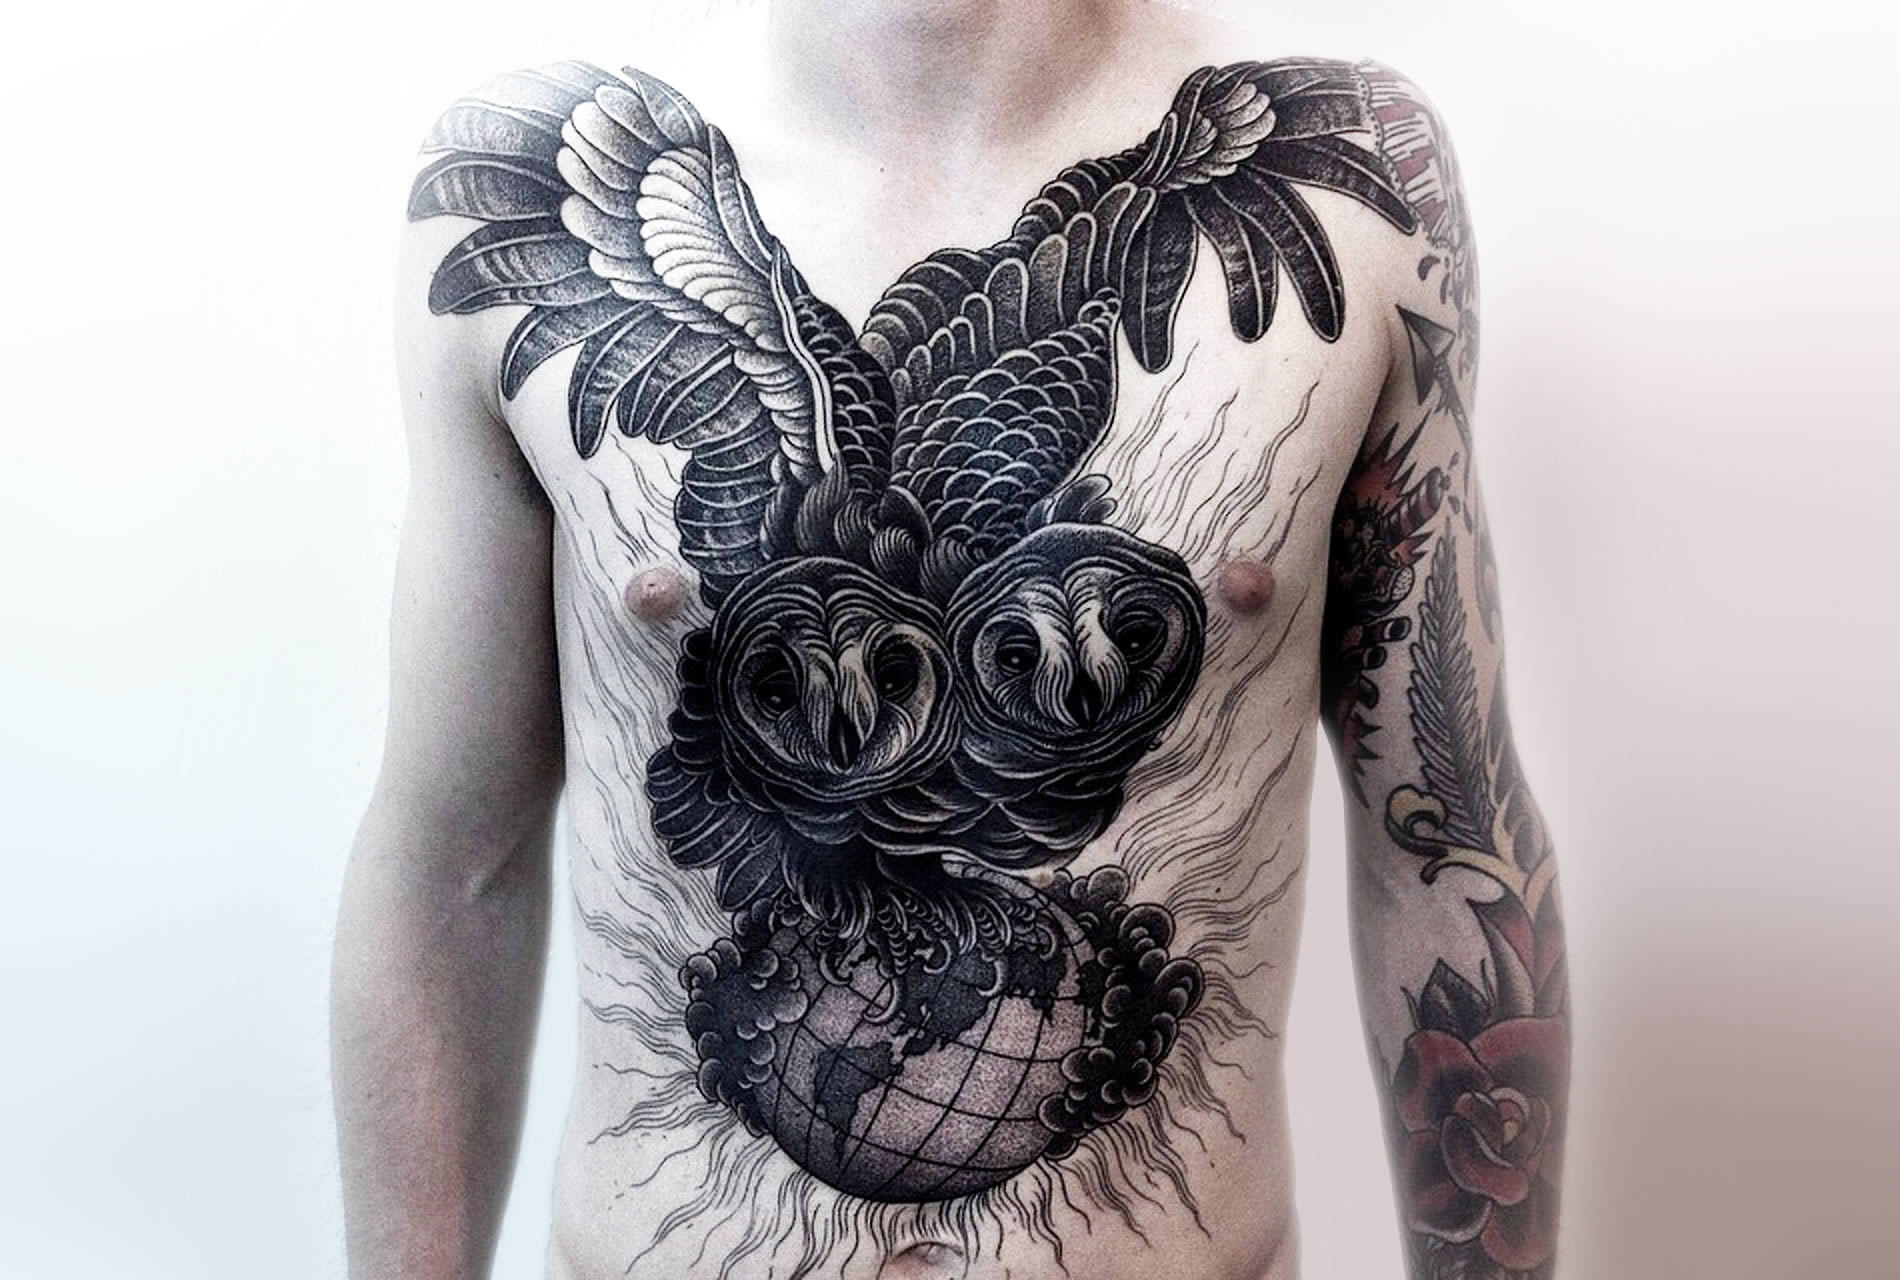 The Grim Tattoos of Alexander Grim